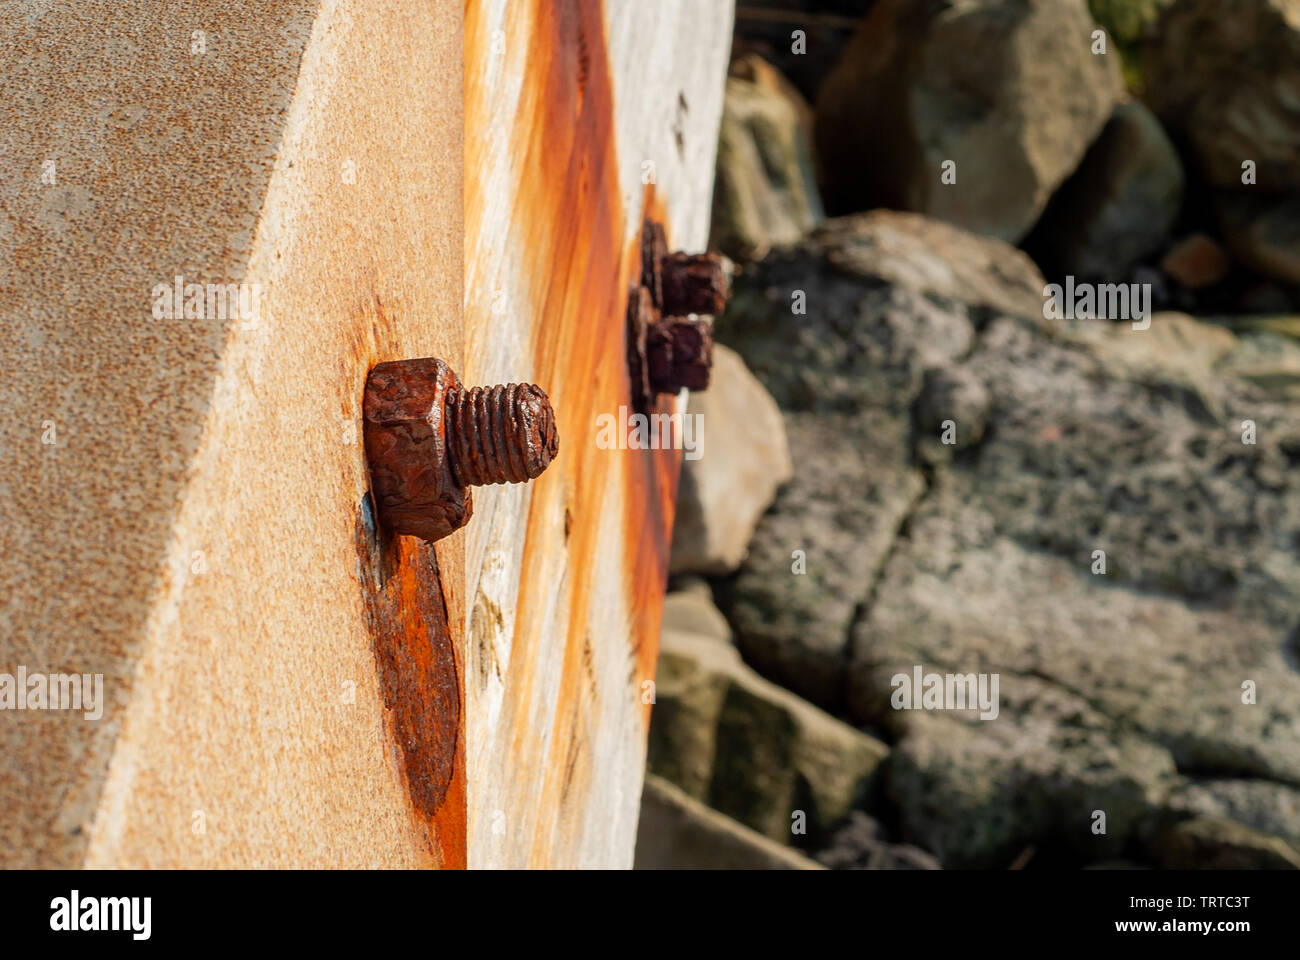 Pin and bolt rusted from salt water, taken on the bridge of the Massa Lubrense seafront, near Sorrento - Stock Image